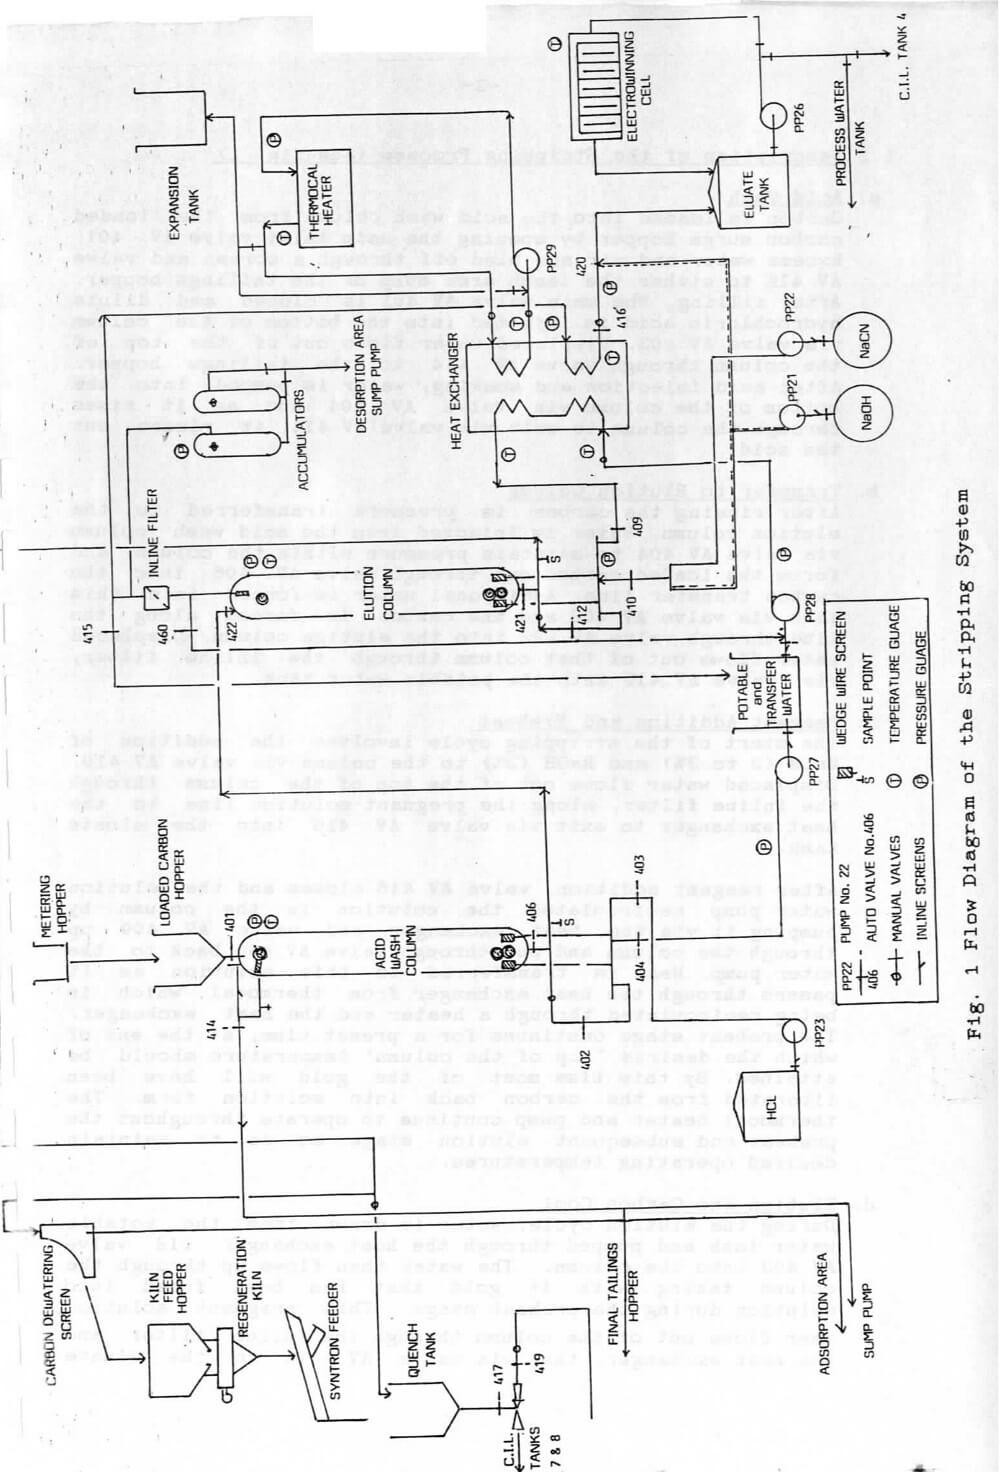 Aarl Carbon Stripping System Operation Elution Electrowinning Water Level Detector Circuit Diagram Gold Room Flowsheet